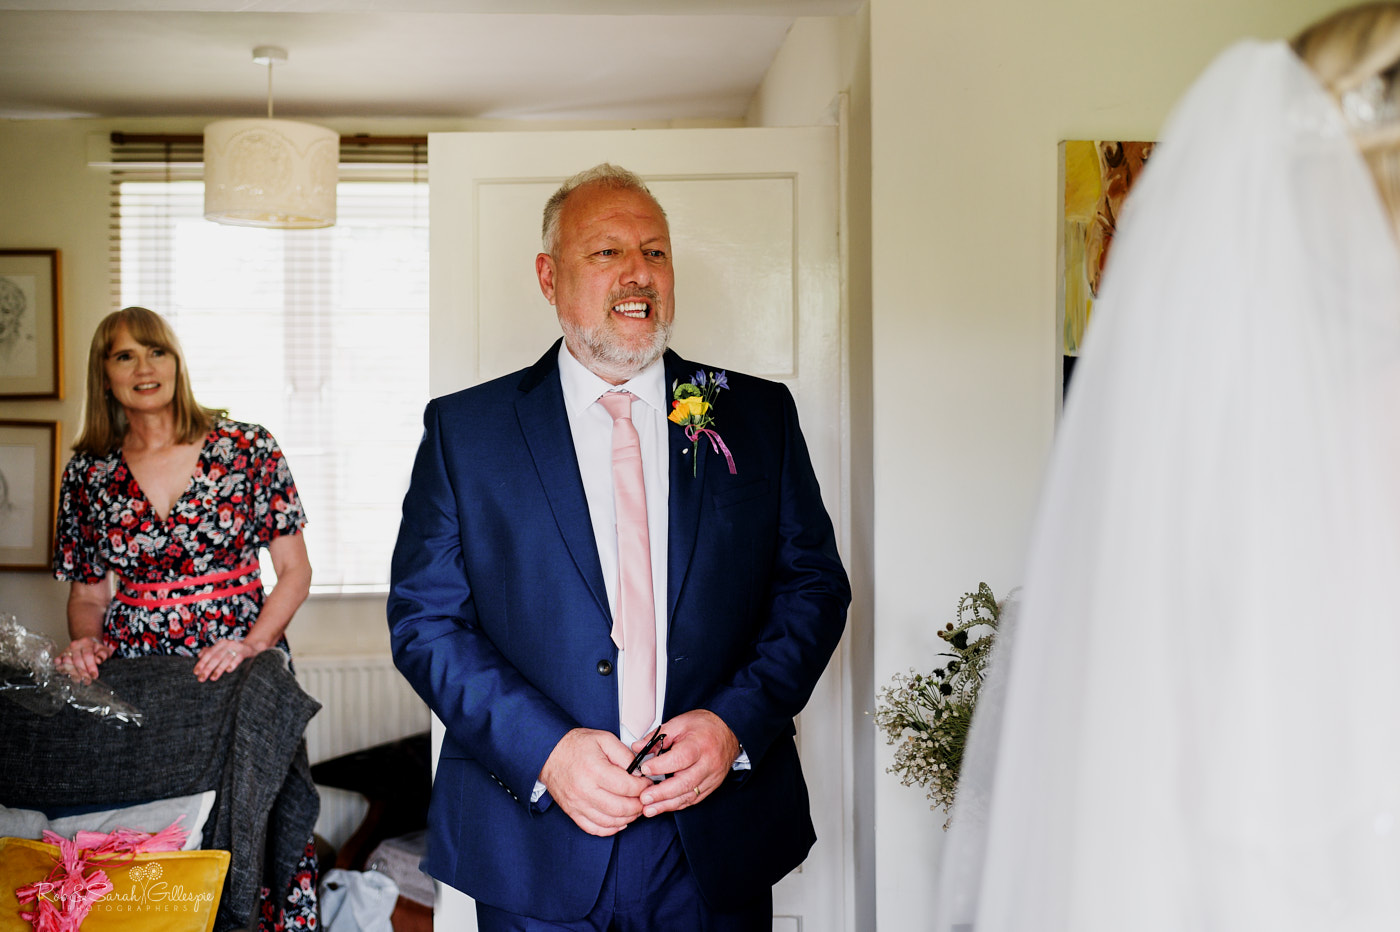 Bride's dad smiling has he sees her ready for wedding